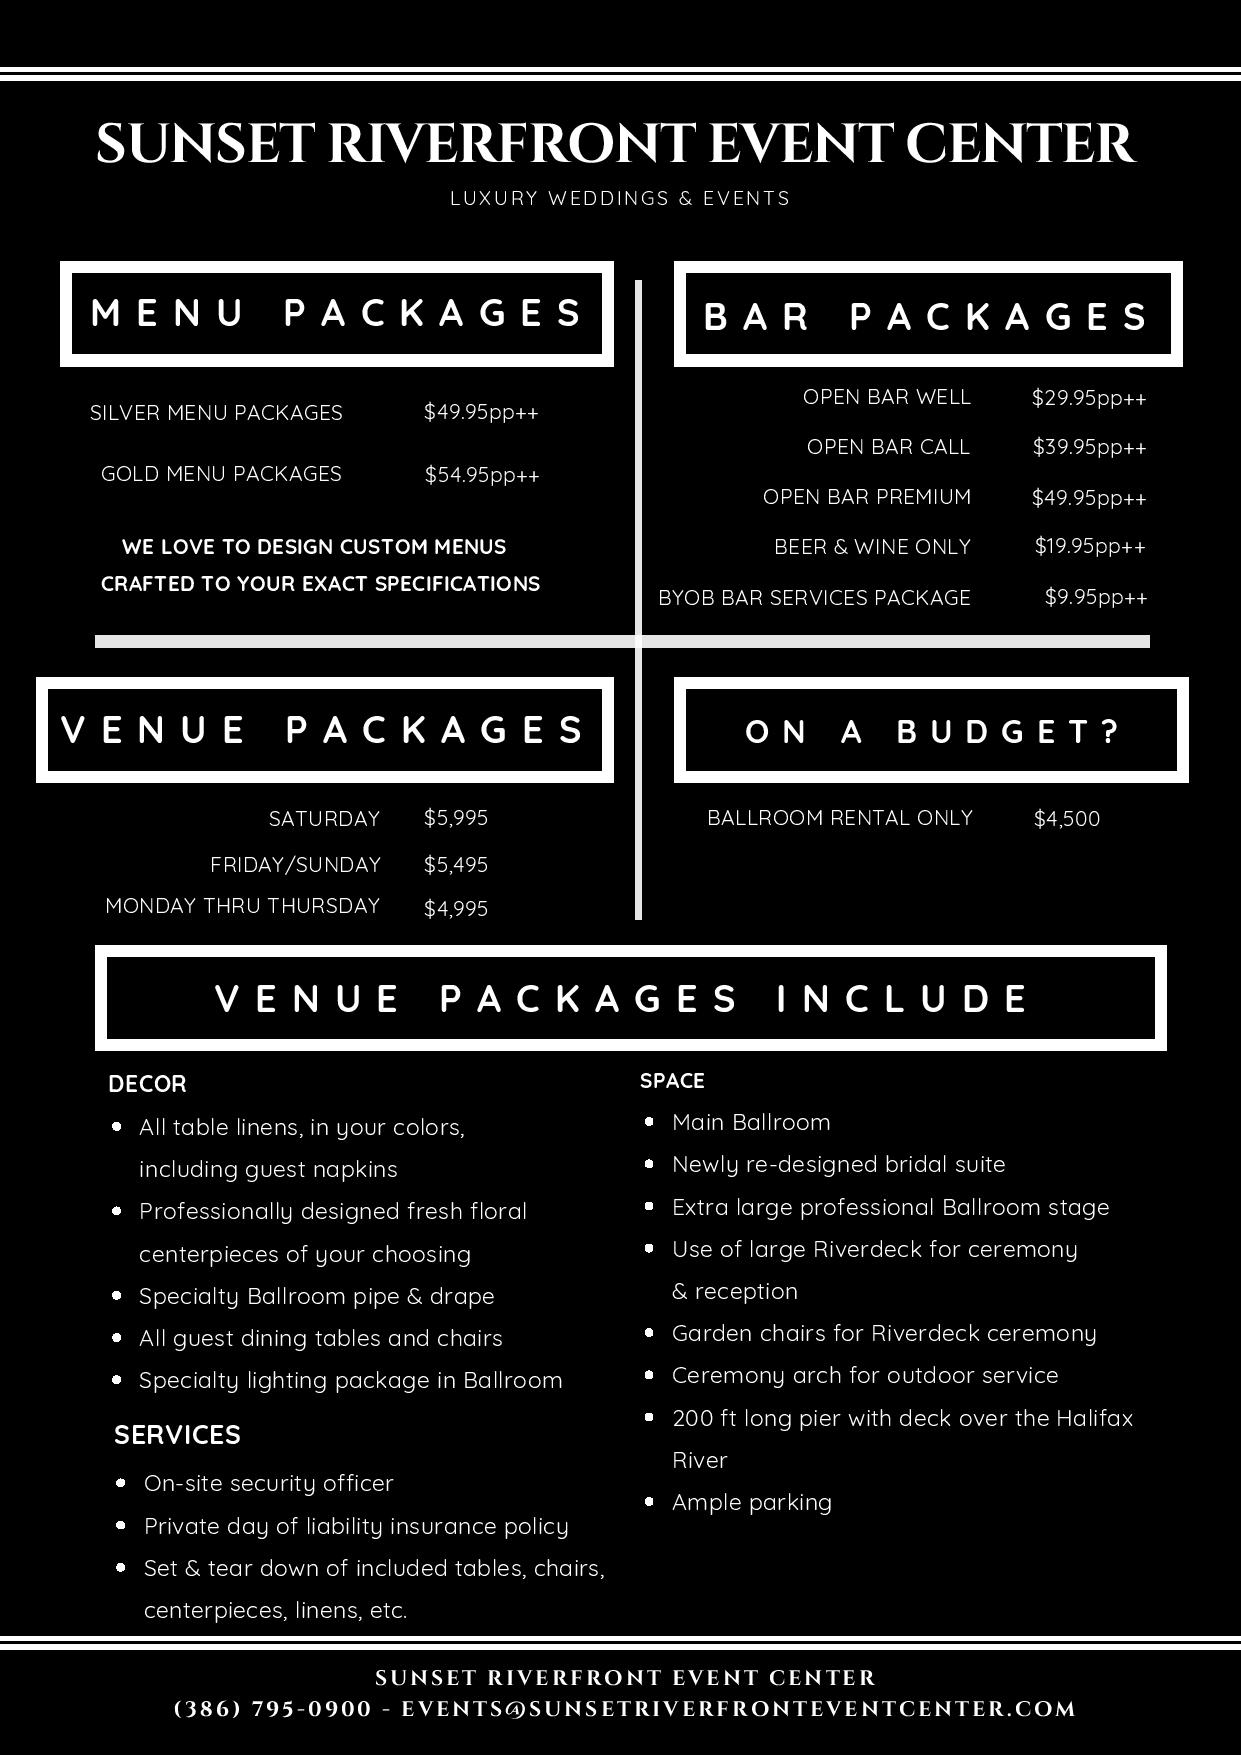 WEDDING PACKAGES – 2020